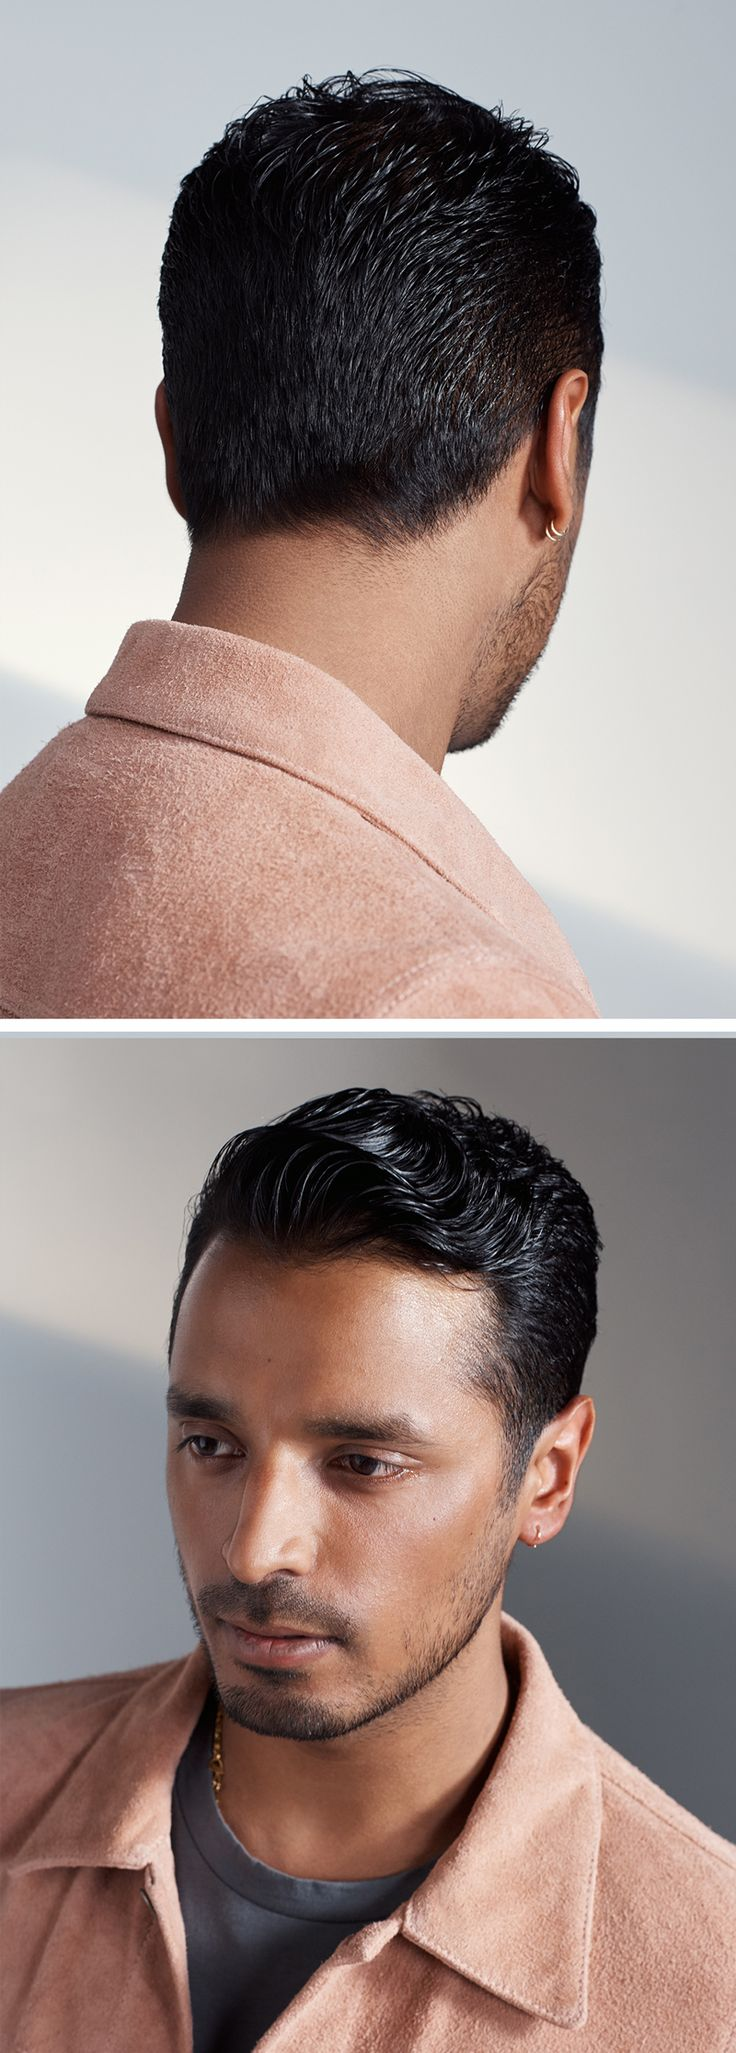 186 best images about grooming guide mr porter on for Mr porter live